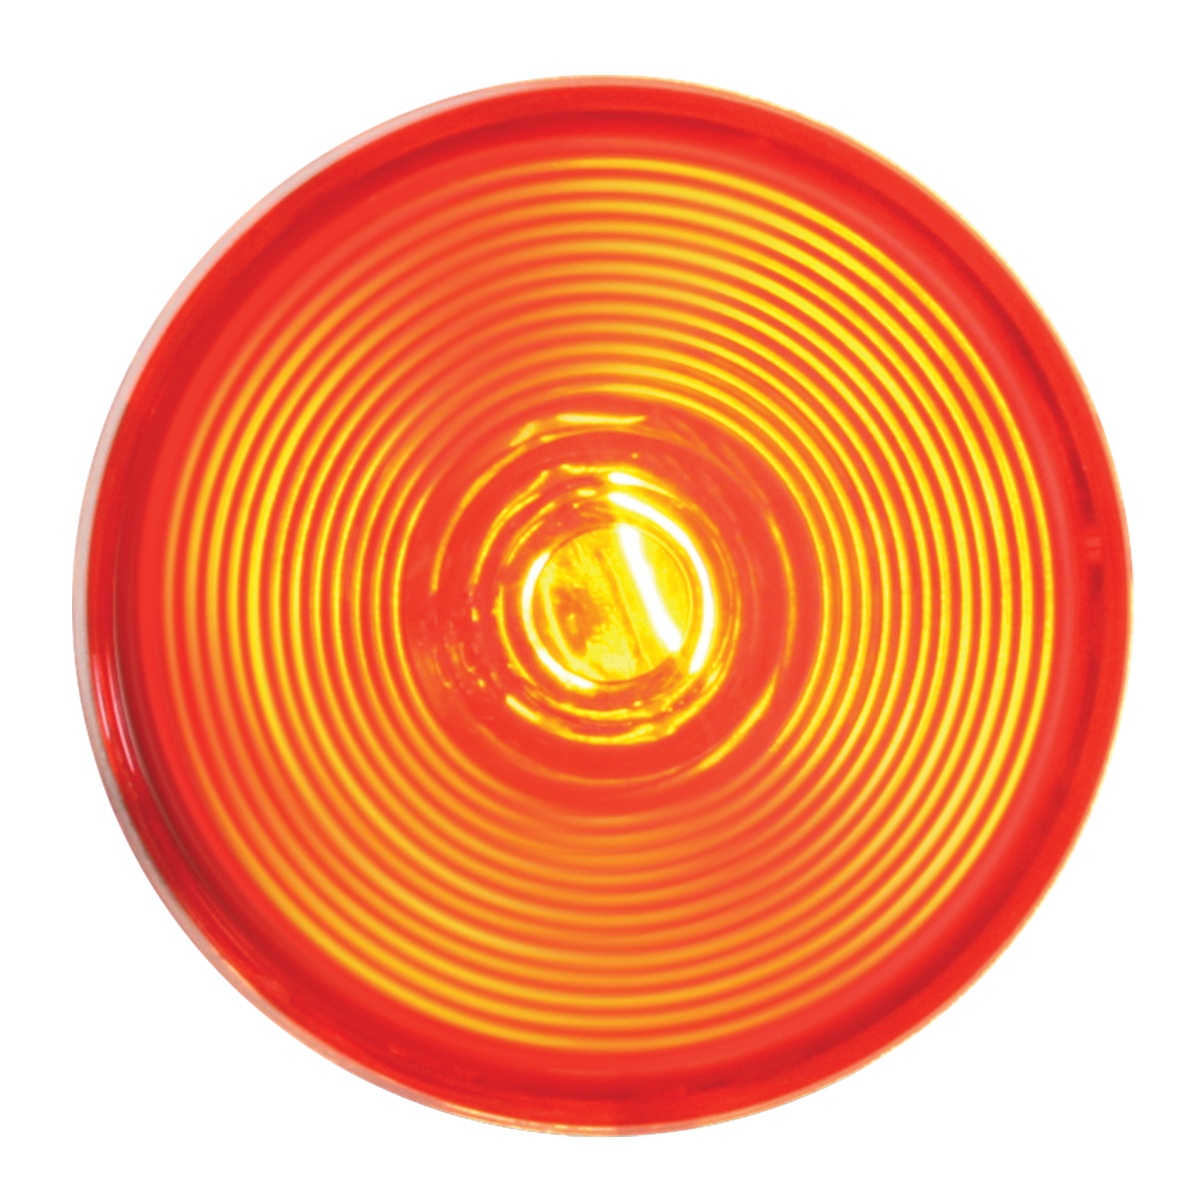 "#79247 4"" Red Stop/Turn/Tail Light with Clear Back Housing - Light Only"